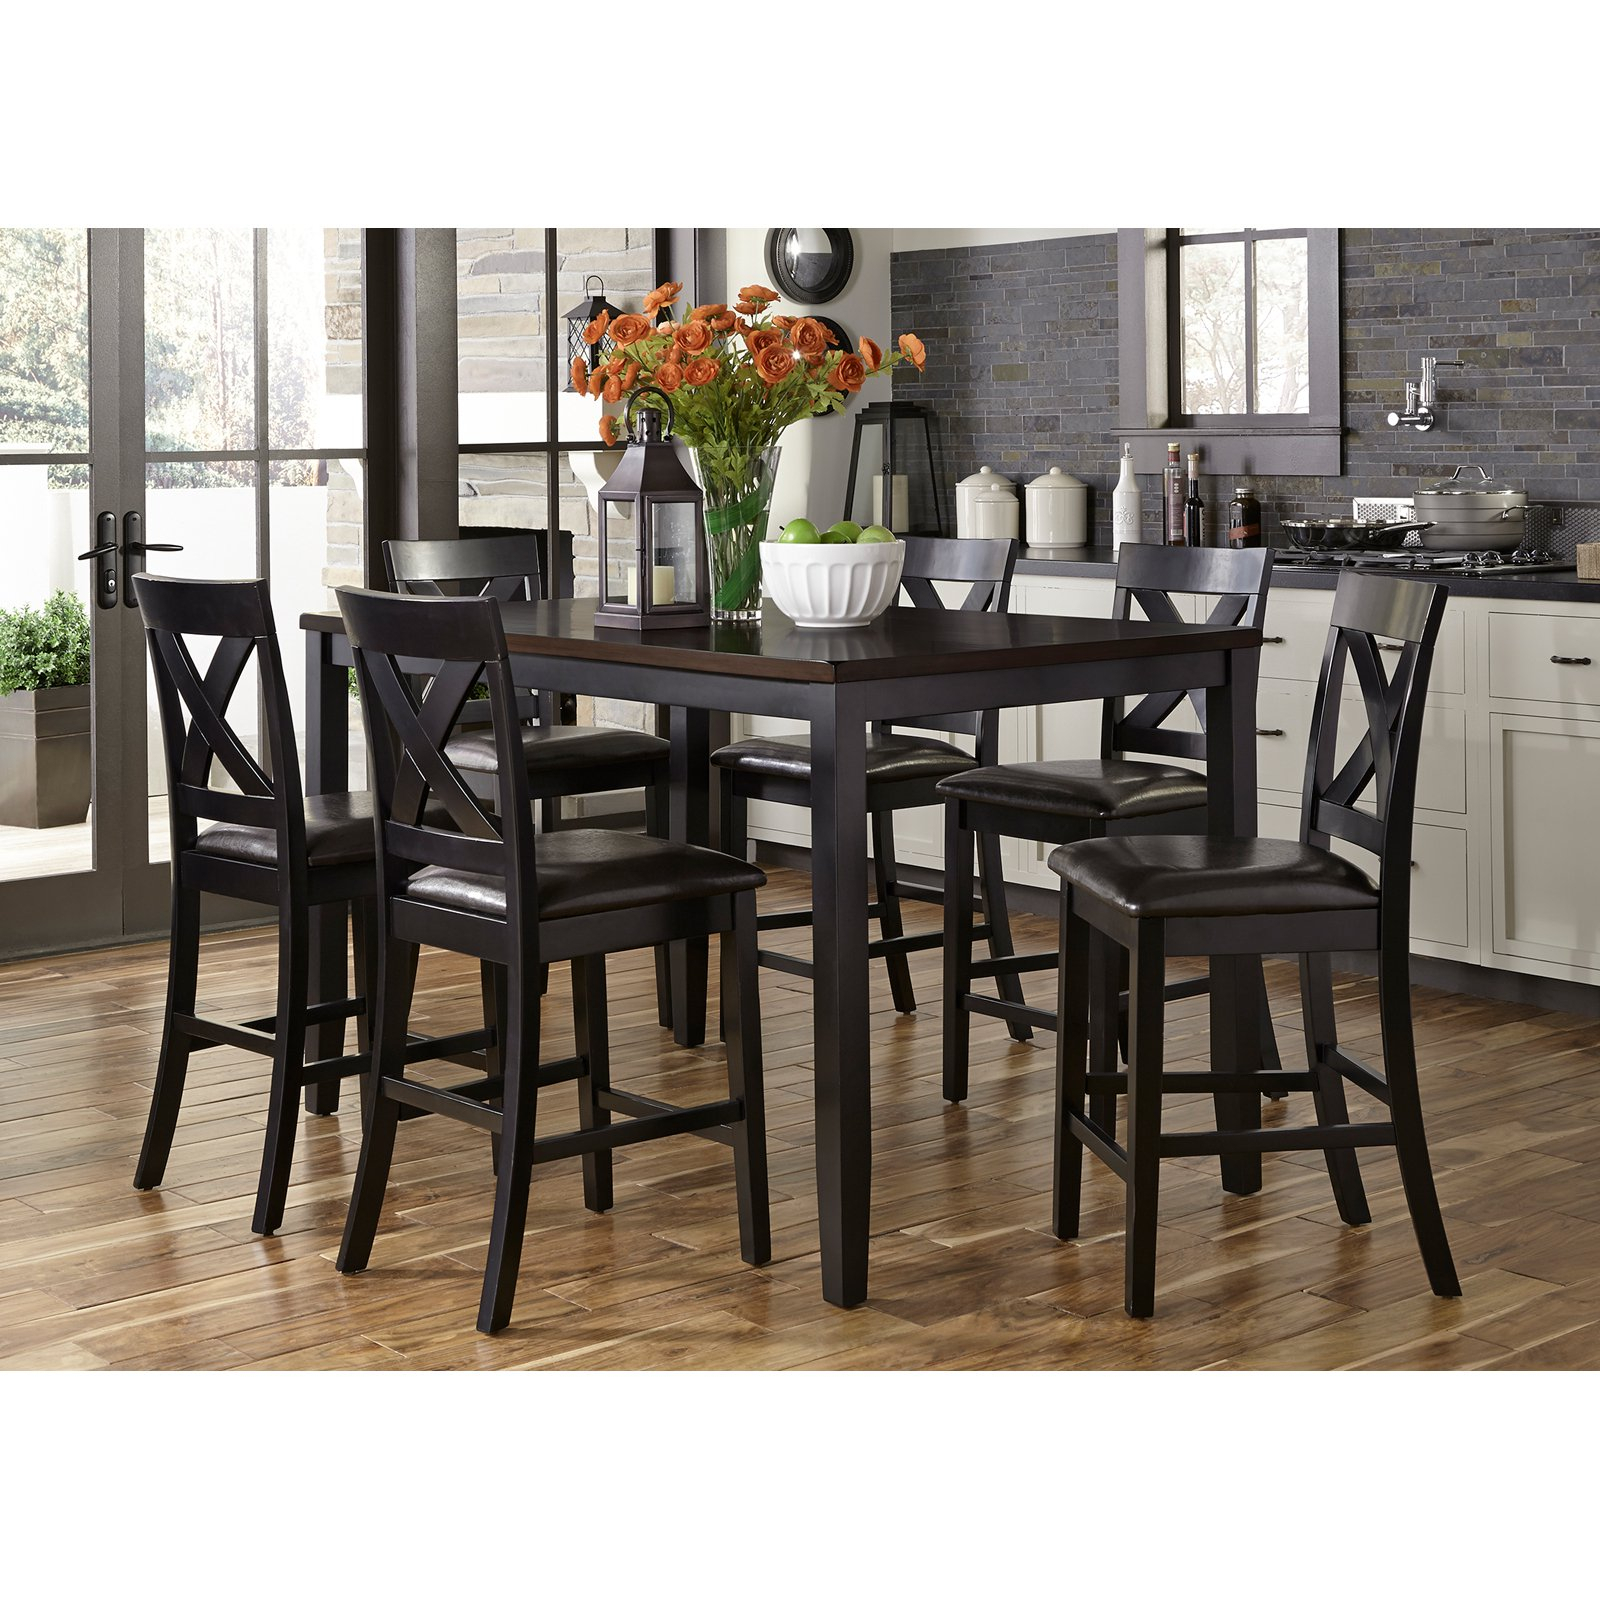 Liberty Furniture Industries Thornton Ii 7 Piece Counter Regarding 2018 Mcmichael 32'' Dining Tables (View 12 of 15)